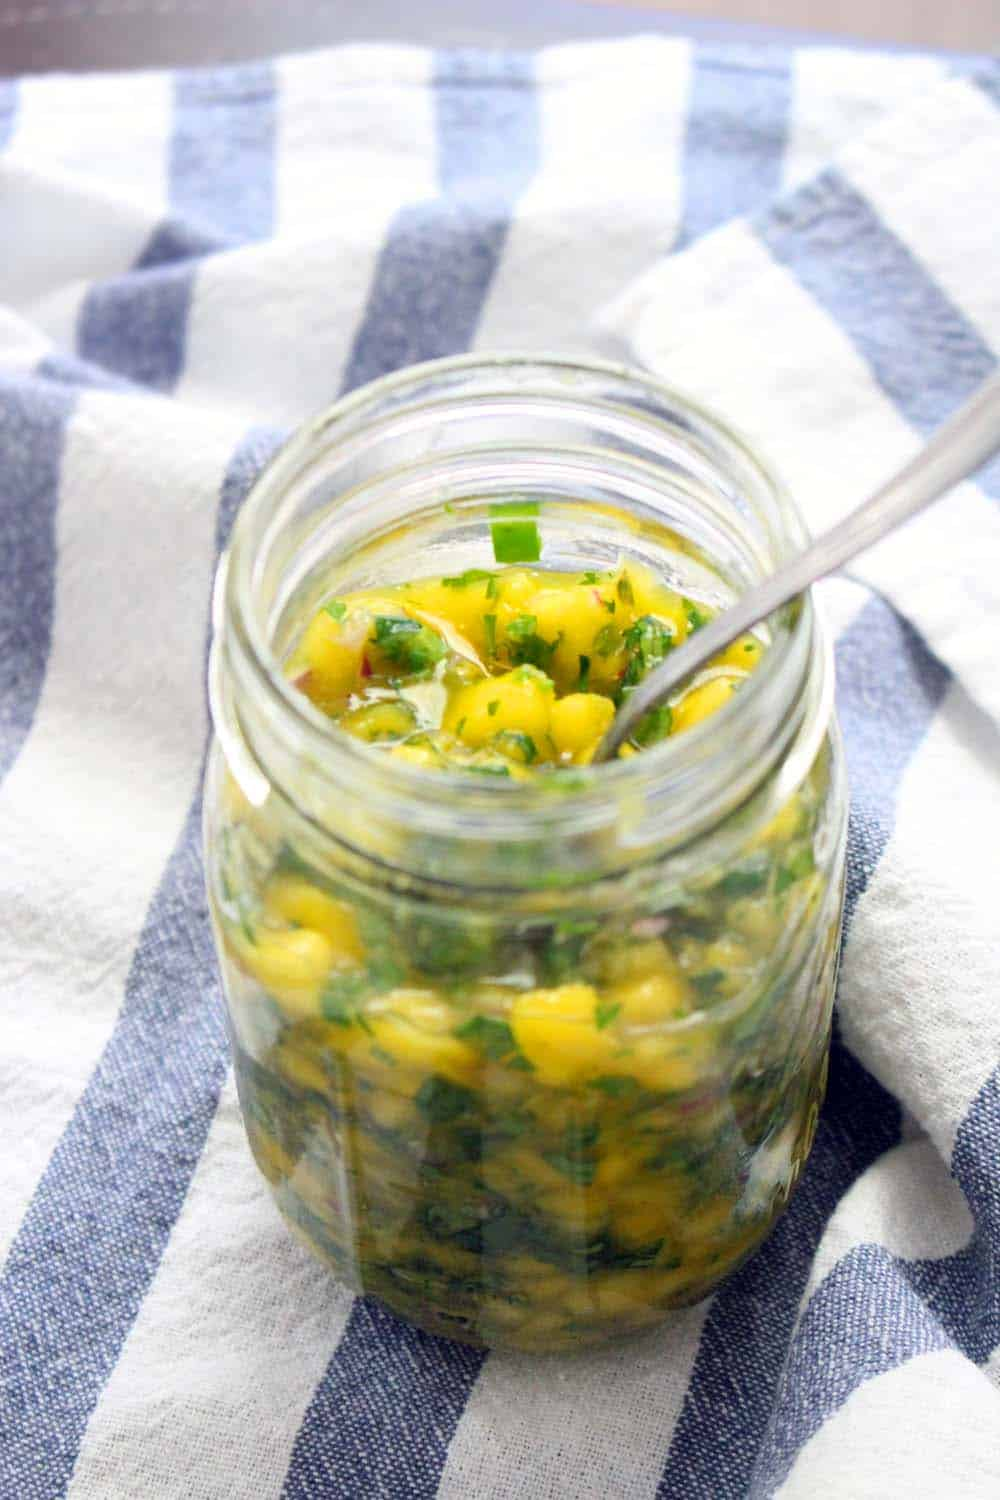 An easy mango salsa recipe that's delicious on fish or chicken, in tacos, on rice, or with your favorite Mexican inspired dish! No special equipment needed- just chop and combine.